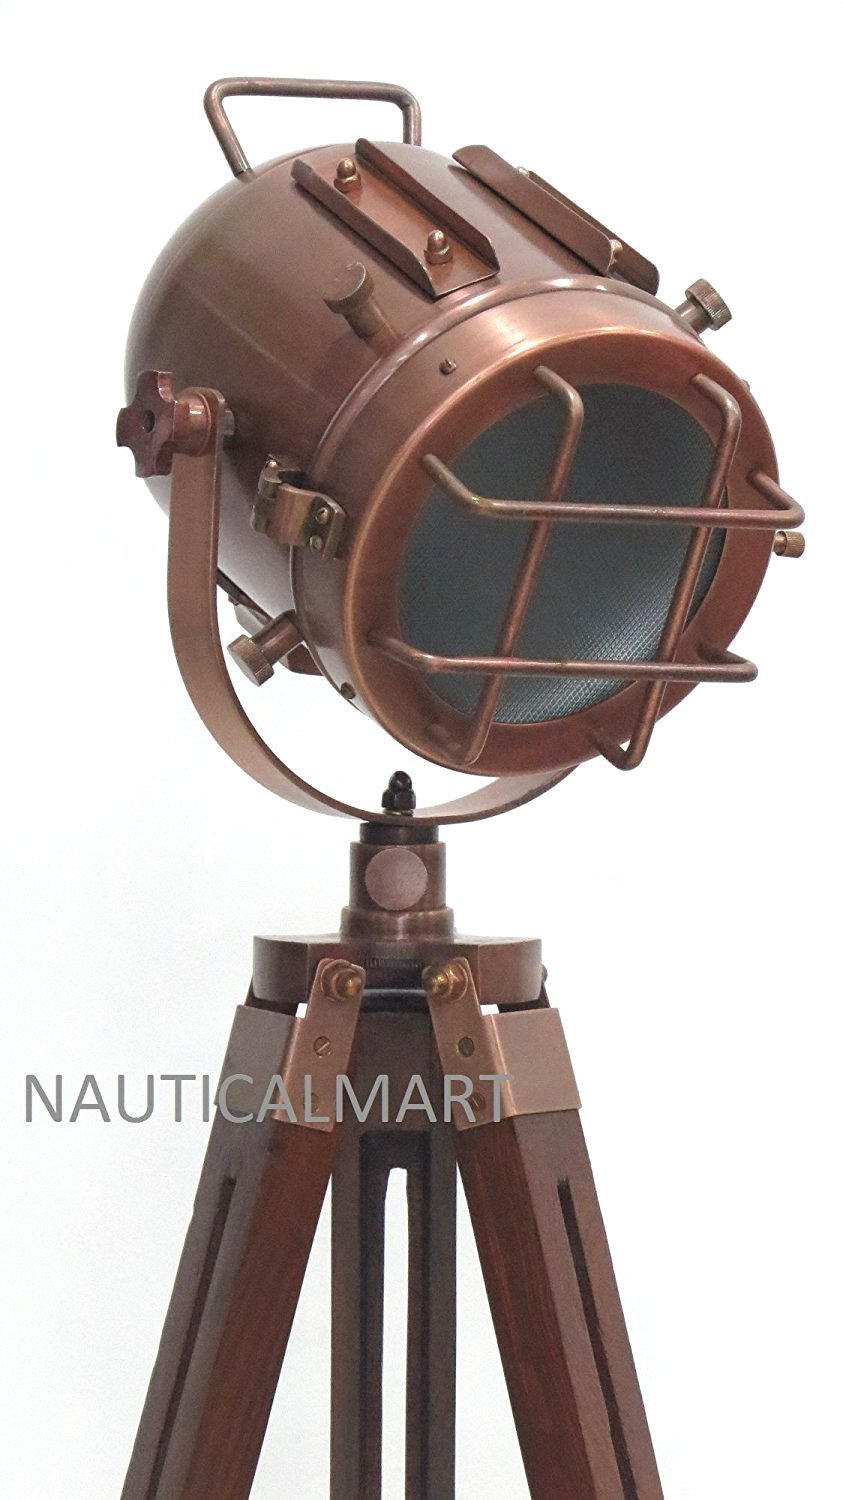 Vintage Decorative Marine Nautical Search Light Wooden Tripod By Nauticalmart